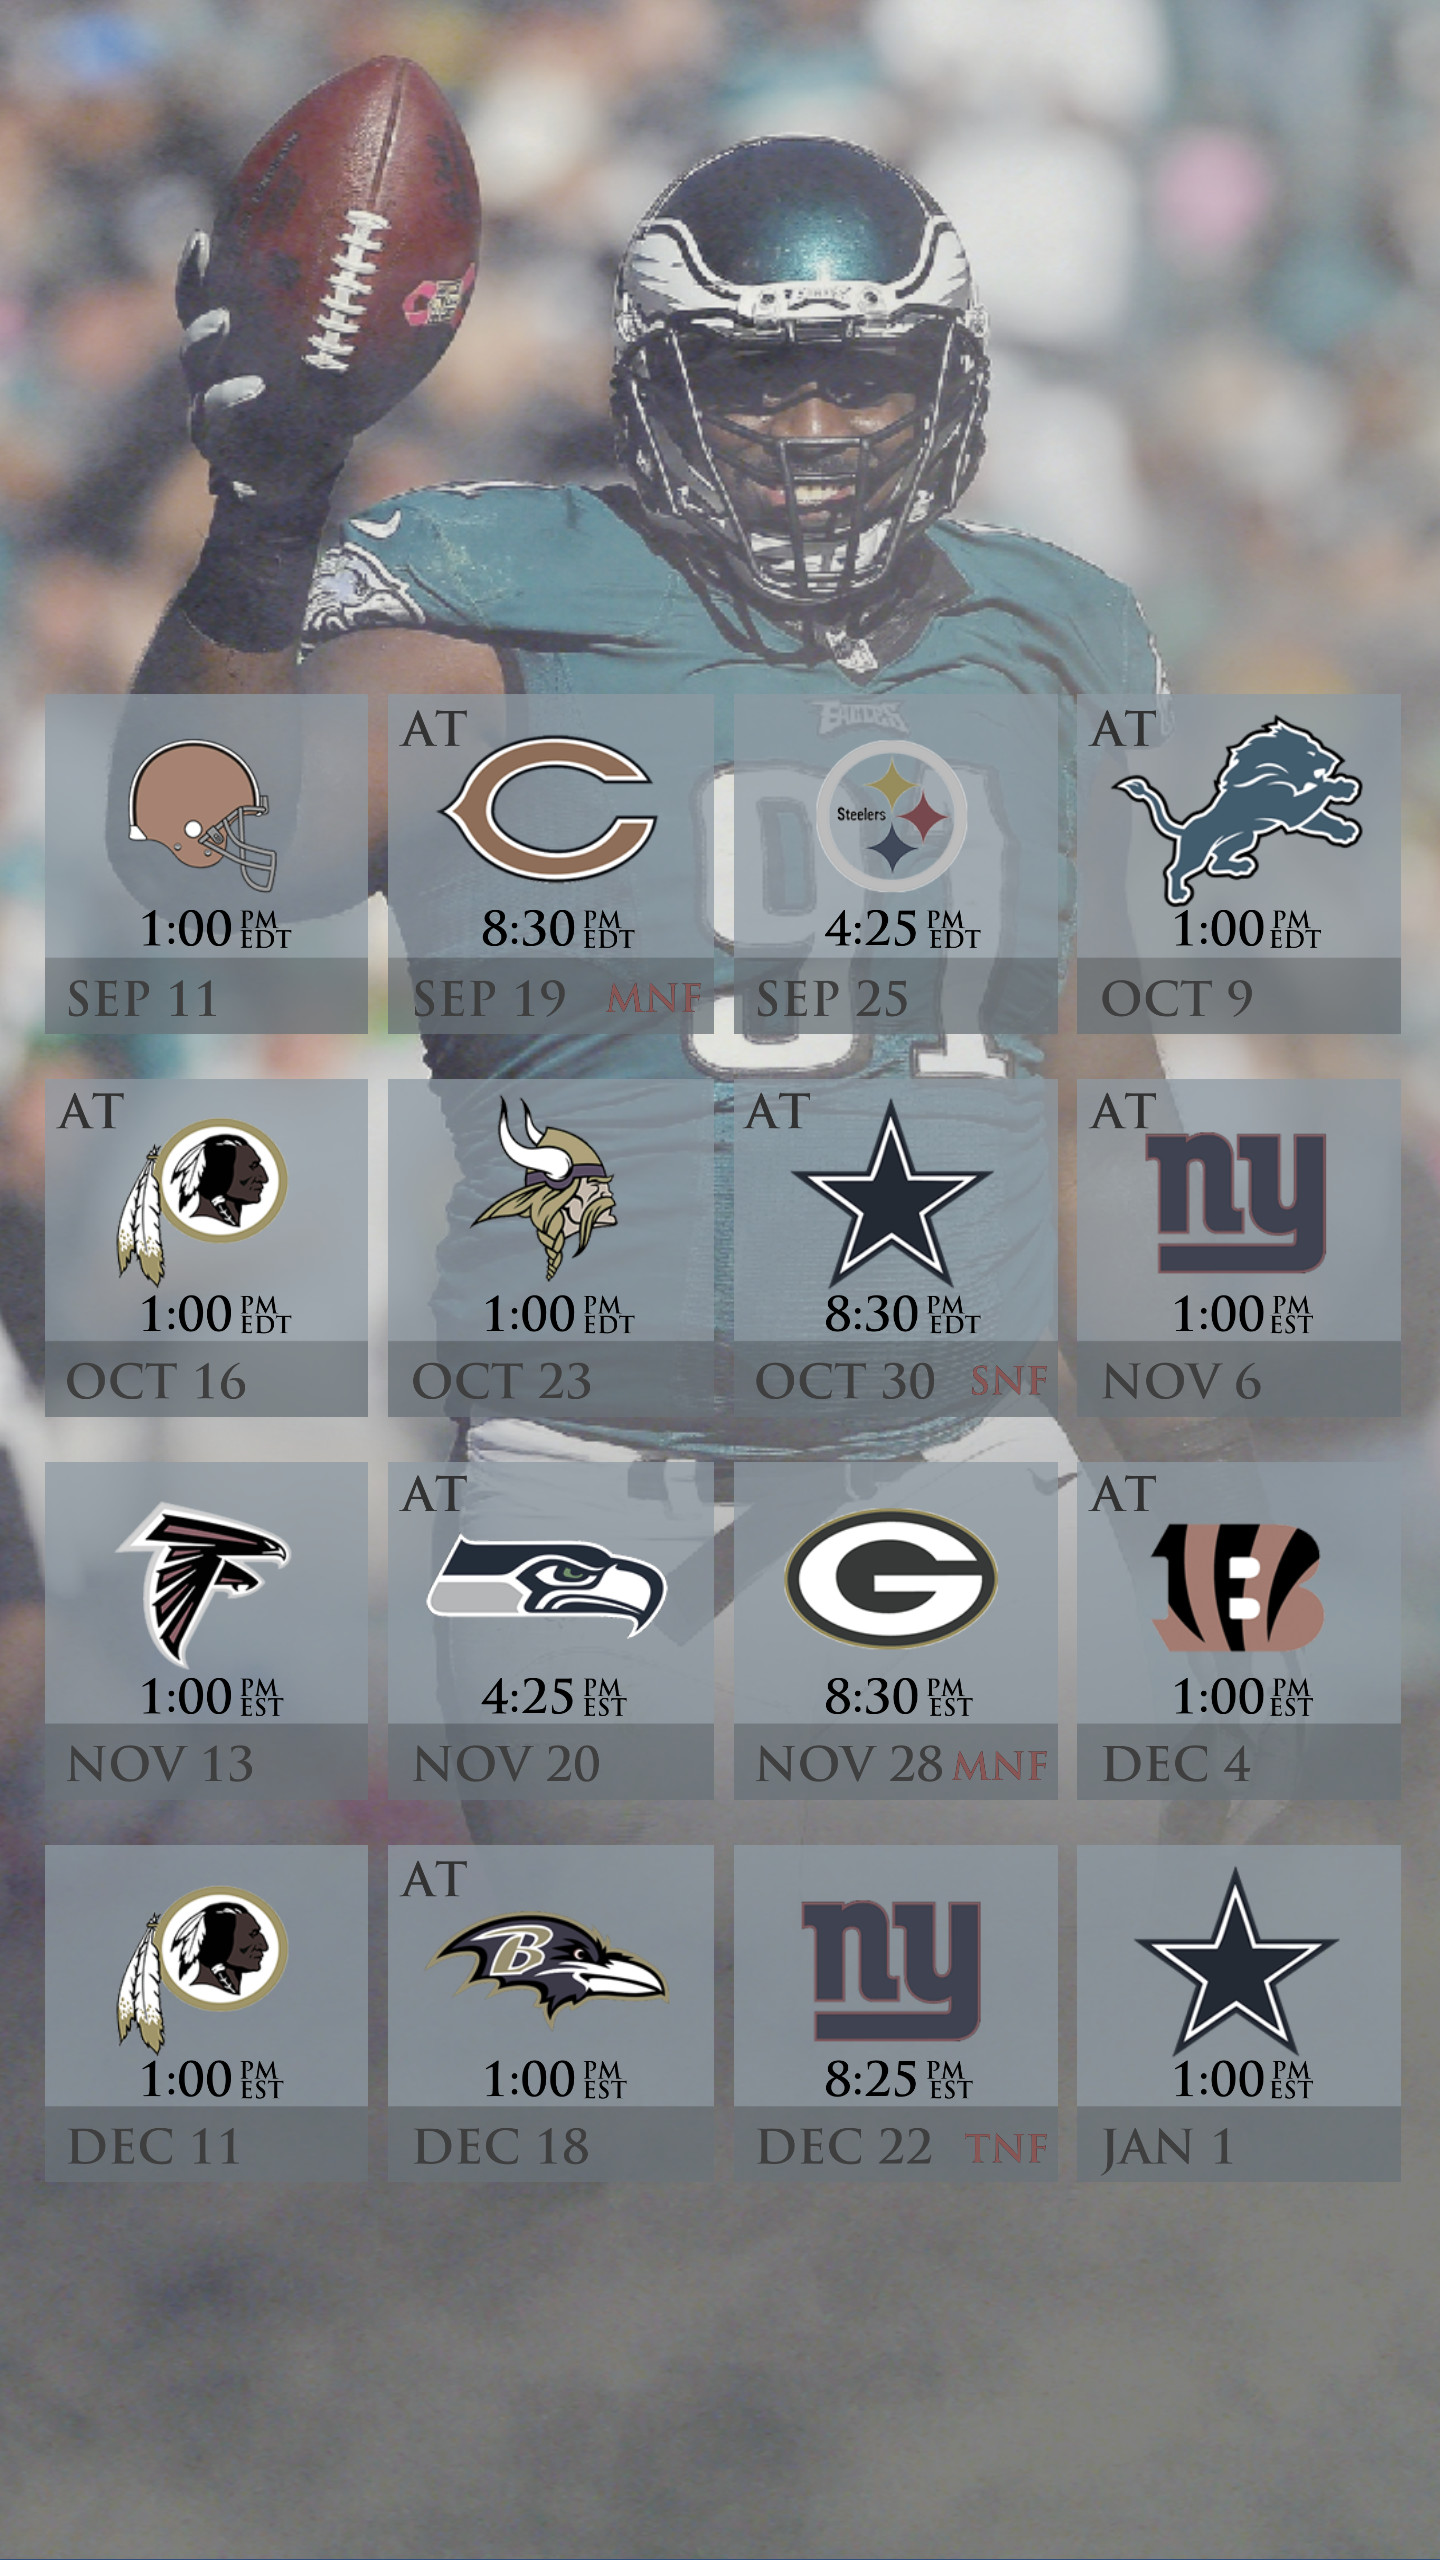 1440x2560 Eagles Schedule Mobile Wallpaper (2016) ...